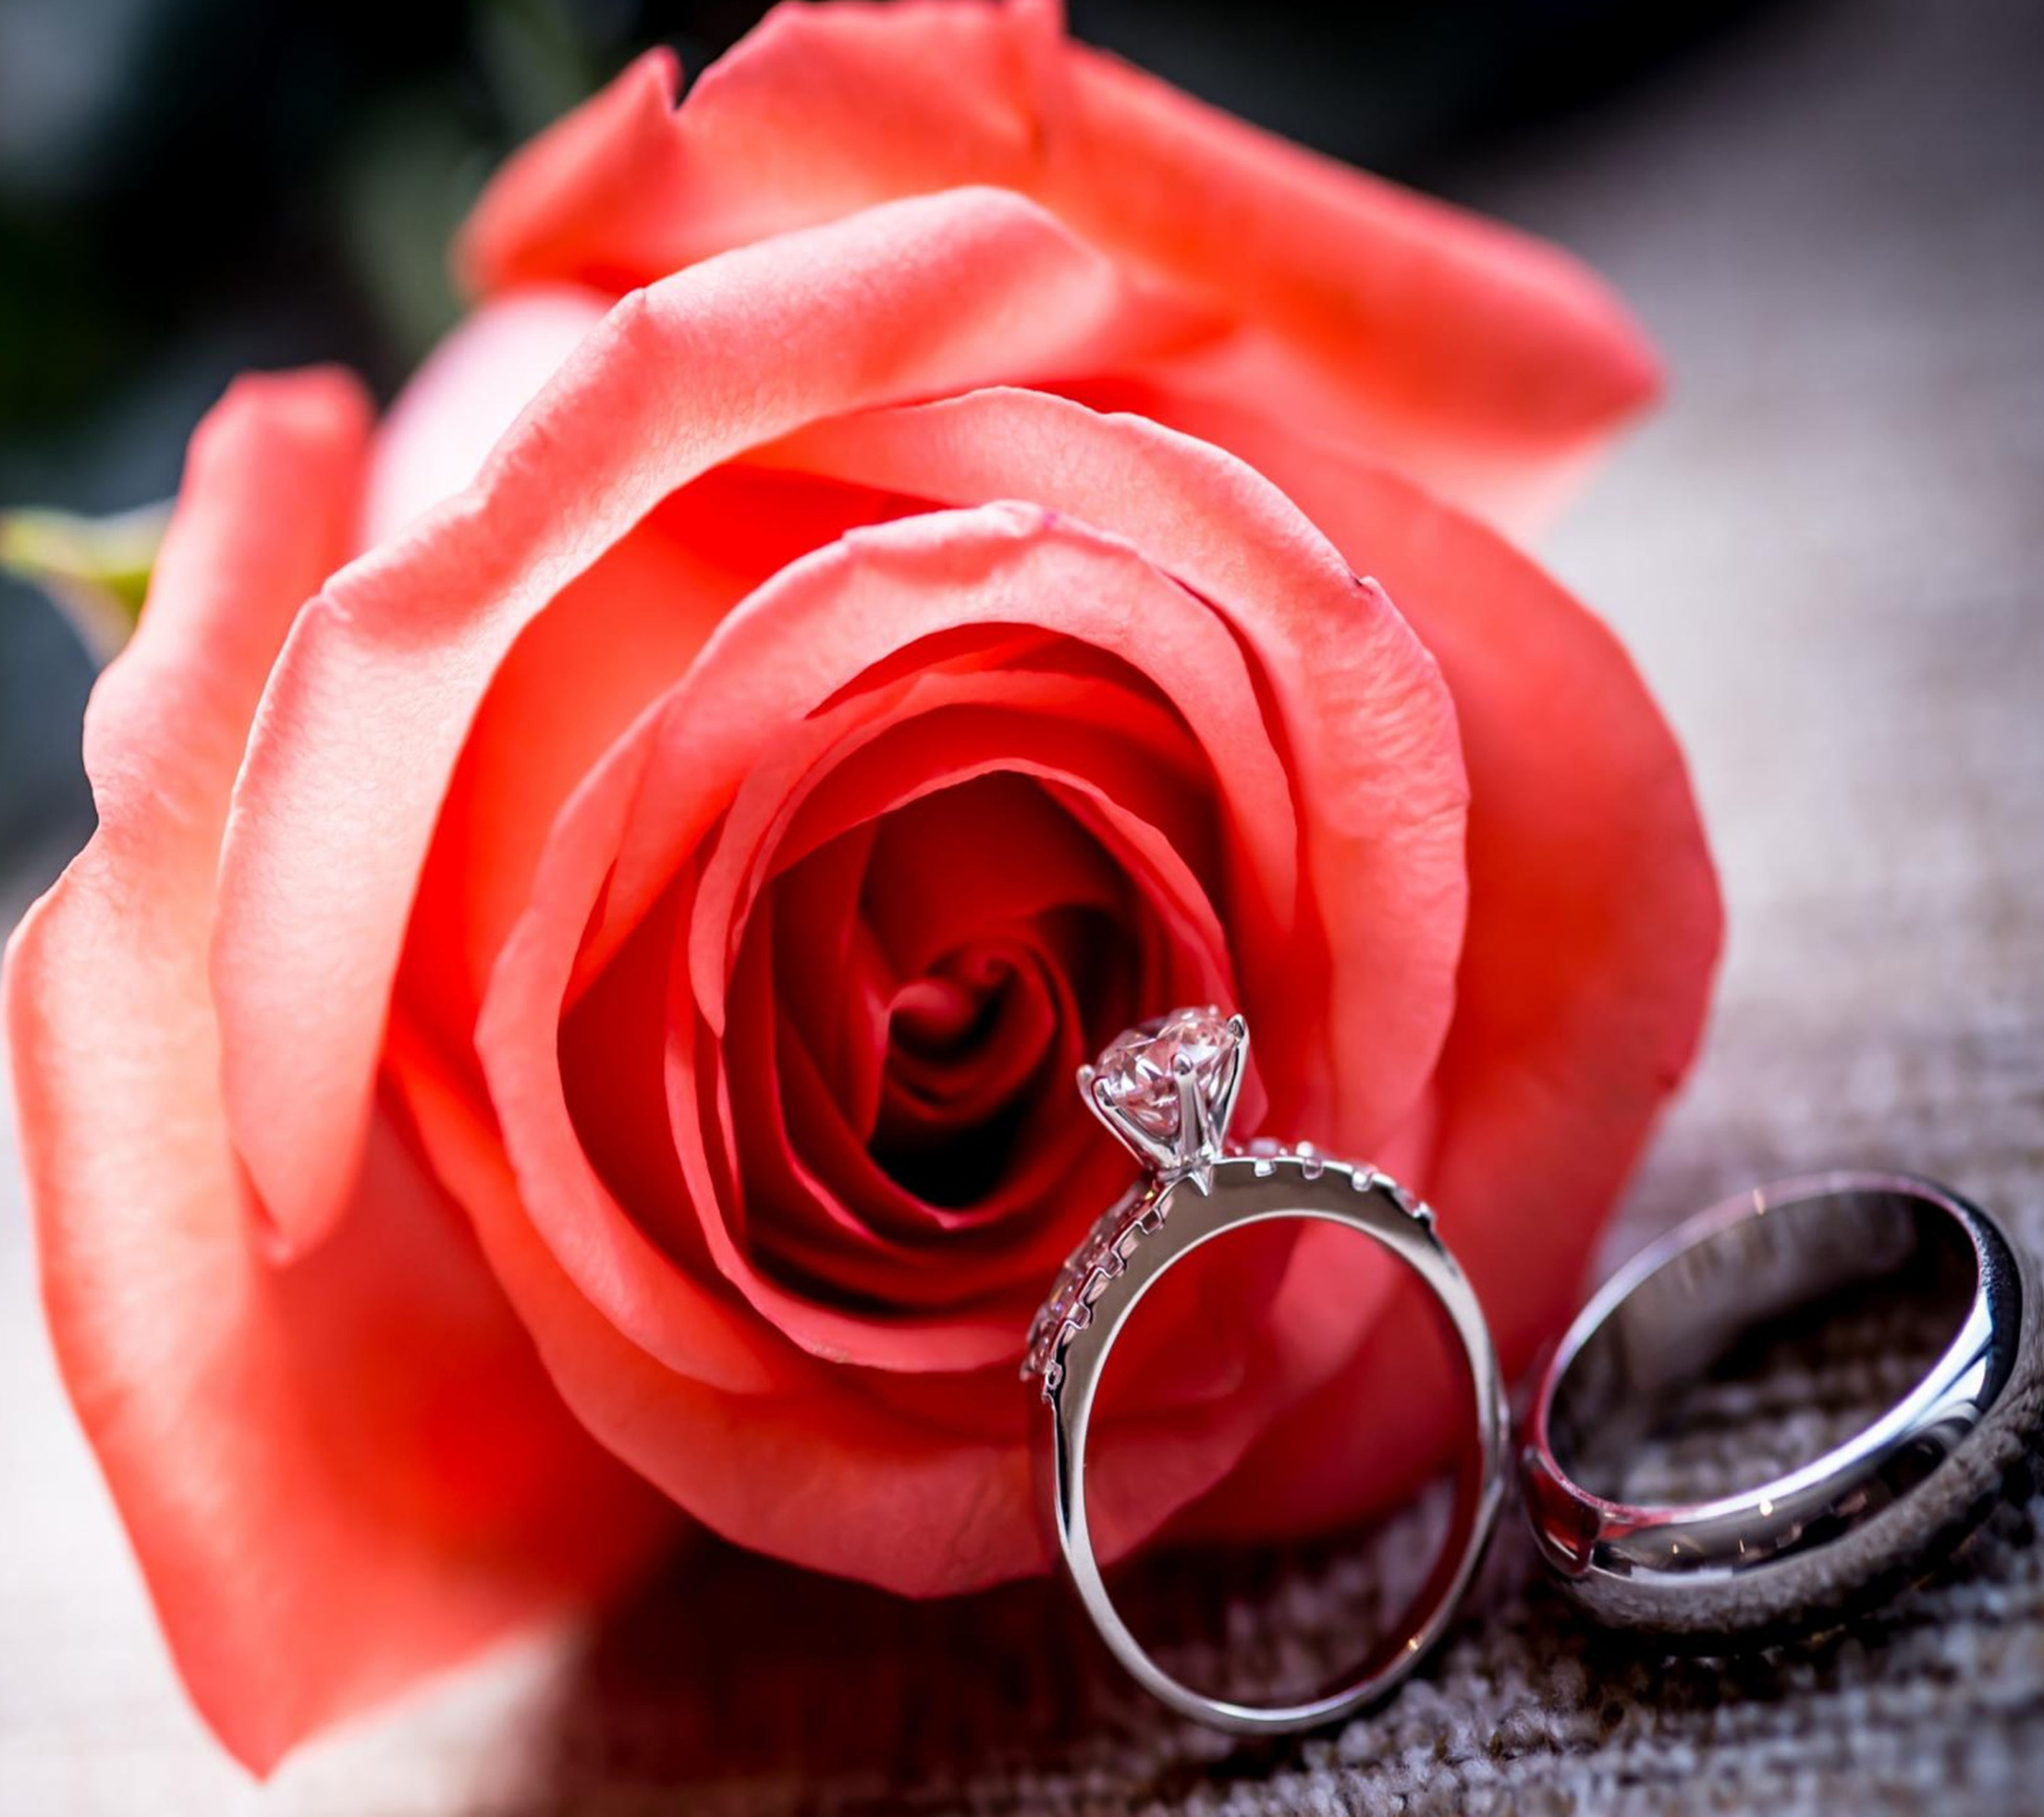 jewelry, ring, flower, wedding, rose - flower, red, close-up, elegance, beauty in nature, no people, nature, outdoors, day, flower head